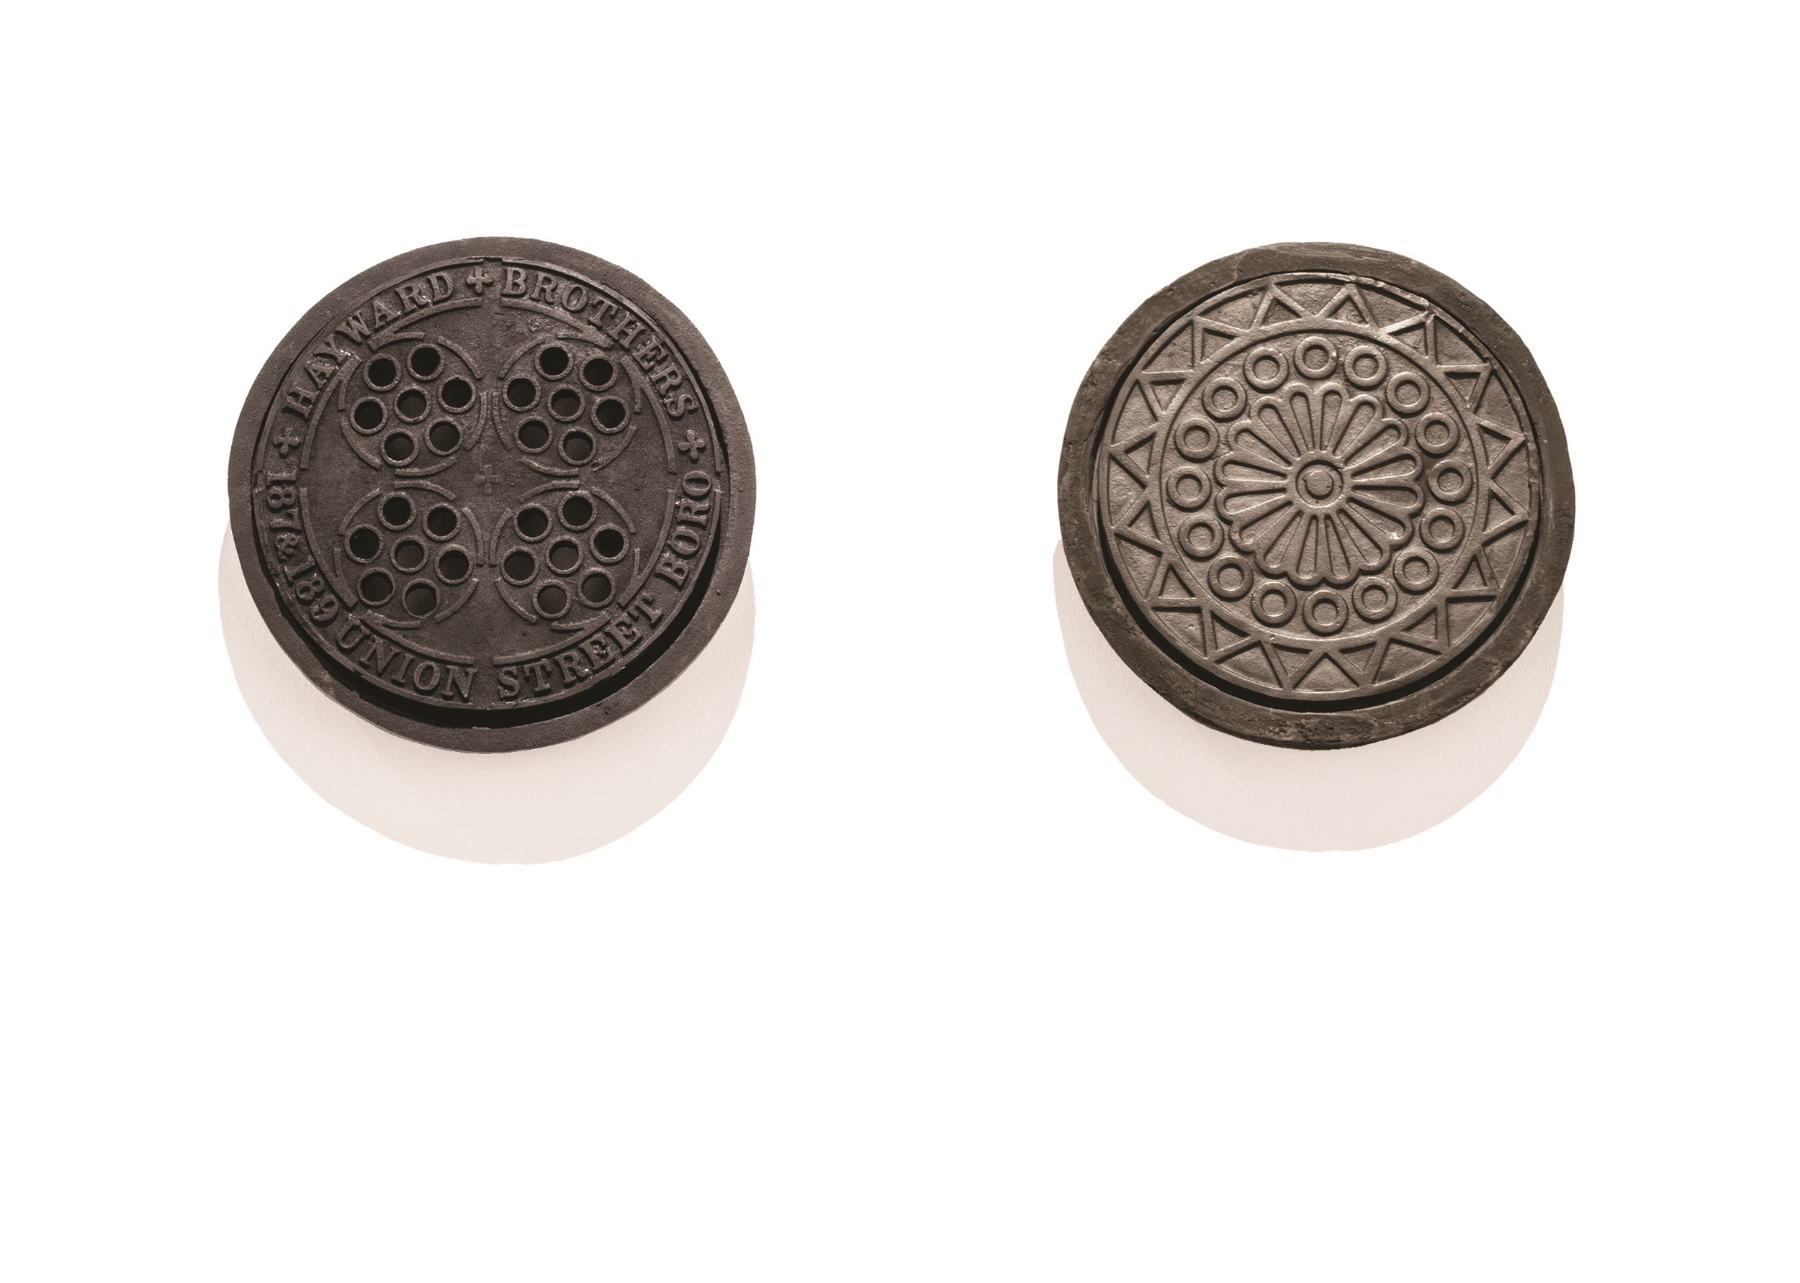 Commemorate SW19, 2012 & Commemorate SE1, 2013 Coal hole covers cast in compressed charcoal dust